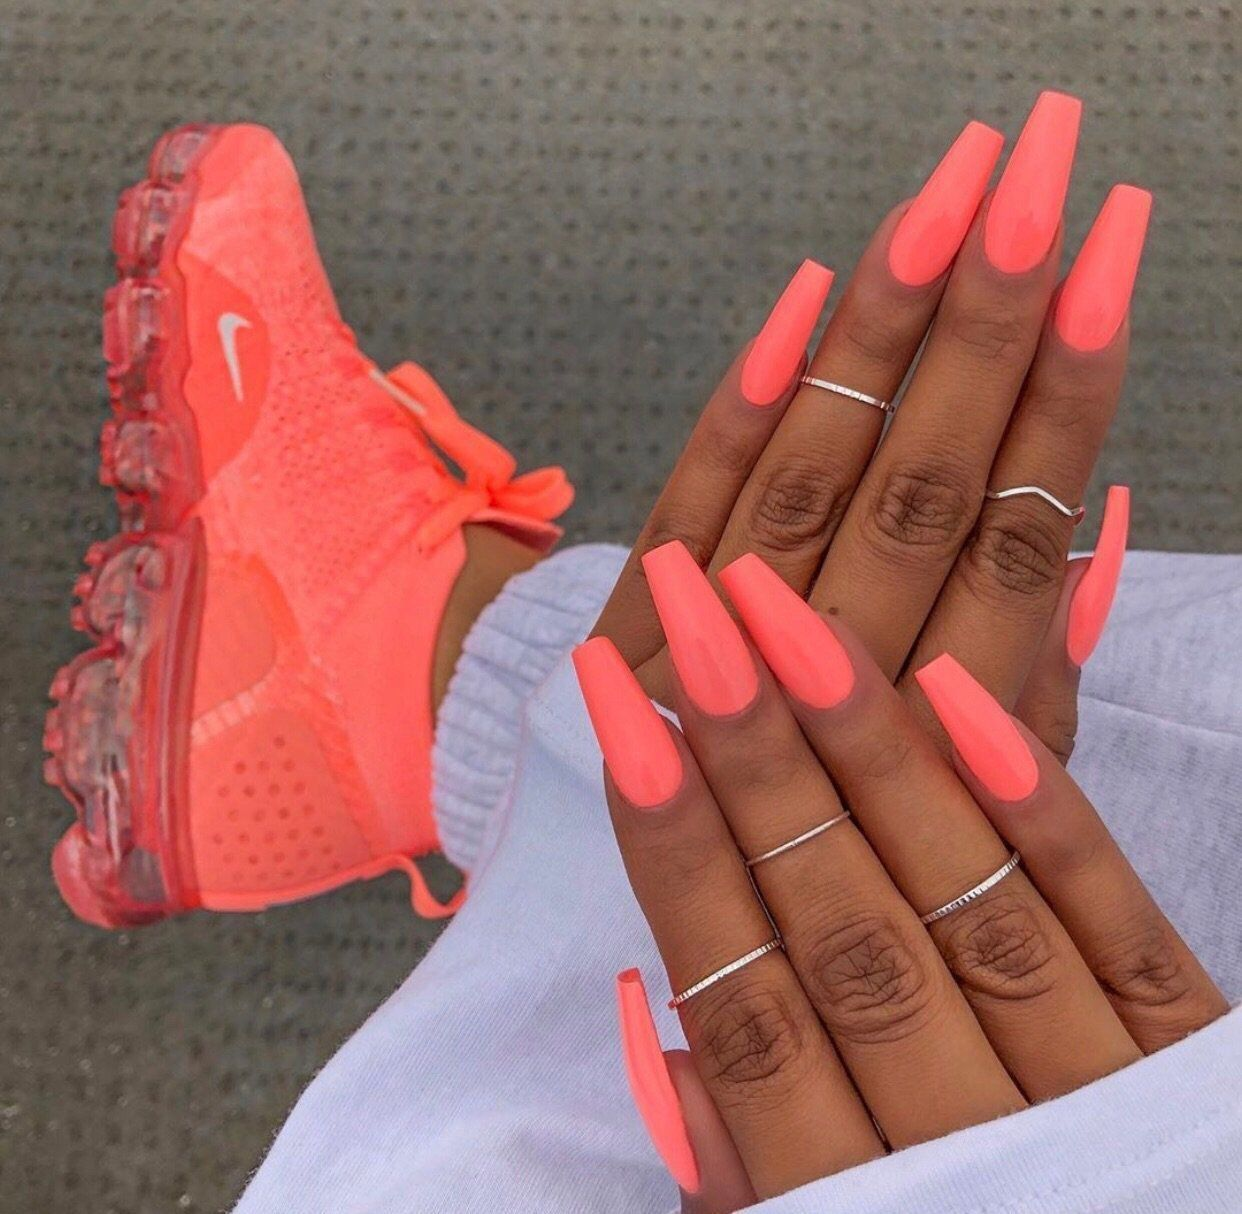 Neon Nails The Flagship And Colorful Trend Of Summer 2020 Neon Coral Nails Neon Coffin Nails Assorted Sneakers In 2020 Neon Coral Nails Neon Nails Long Acrylic Nails